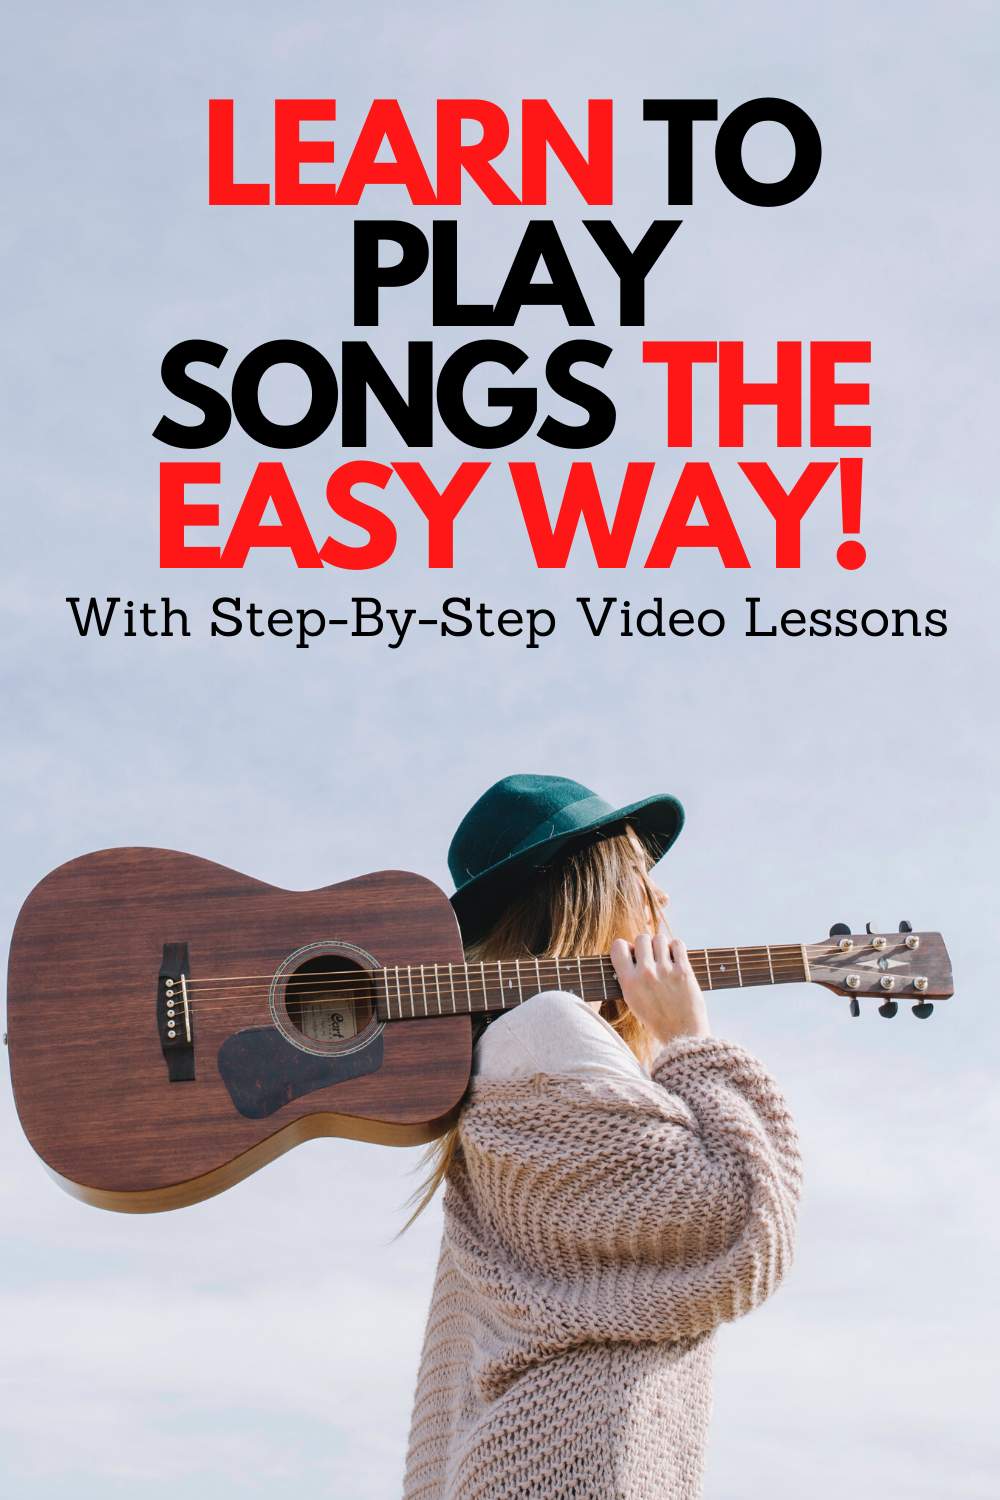 If you're searching for an easy, fast, and fun way to learn guitar, try Guitar Tricks now! They will give you all the guitar knowledge you need to success with their award-winning, step-by-step curriculum. They have over 11,000 lessons and over 1,000+ songs, with top-notch instructors from all over the world! Click through to get your free trial now! #learnguitar